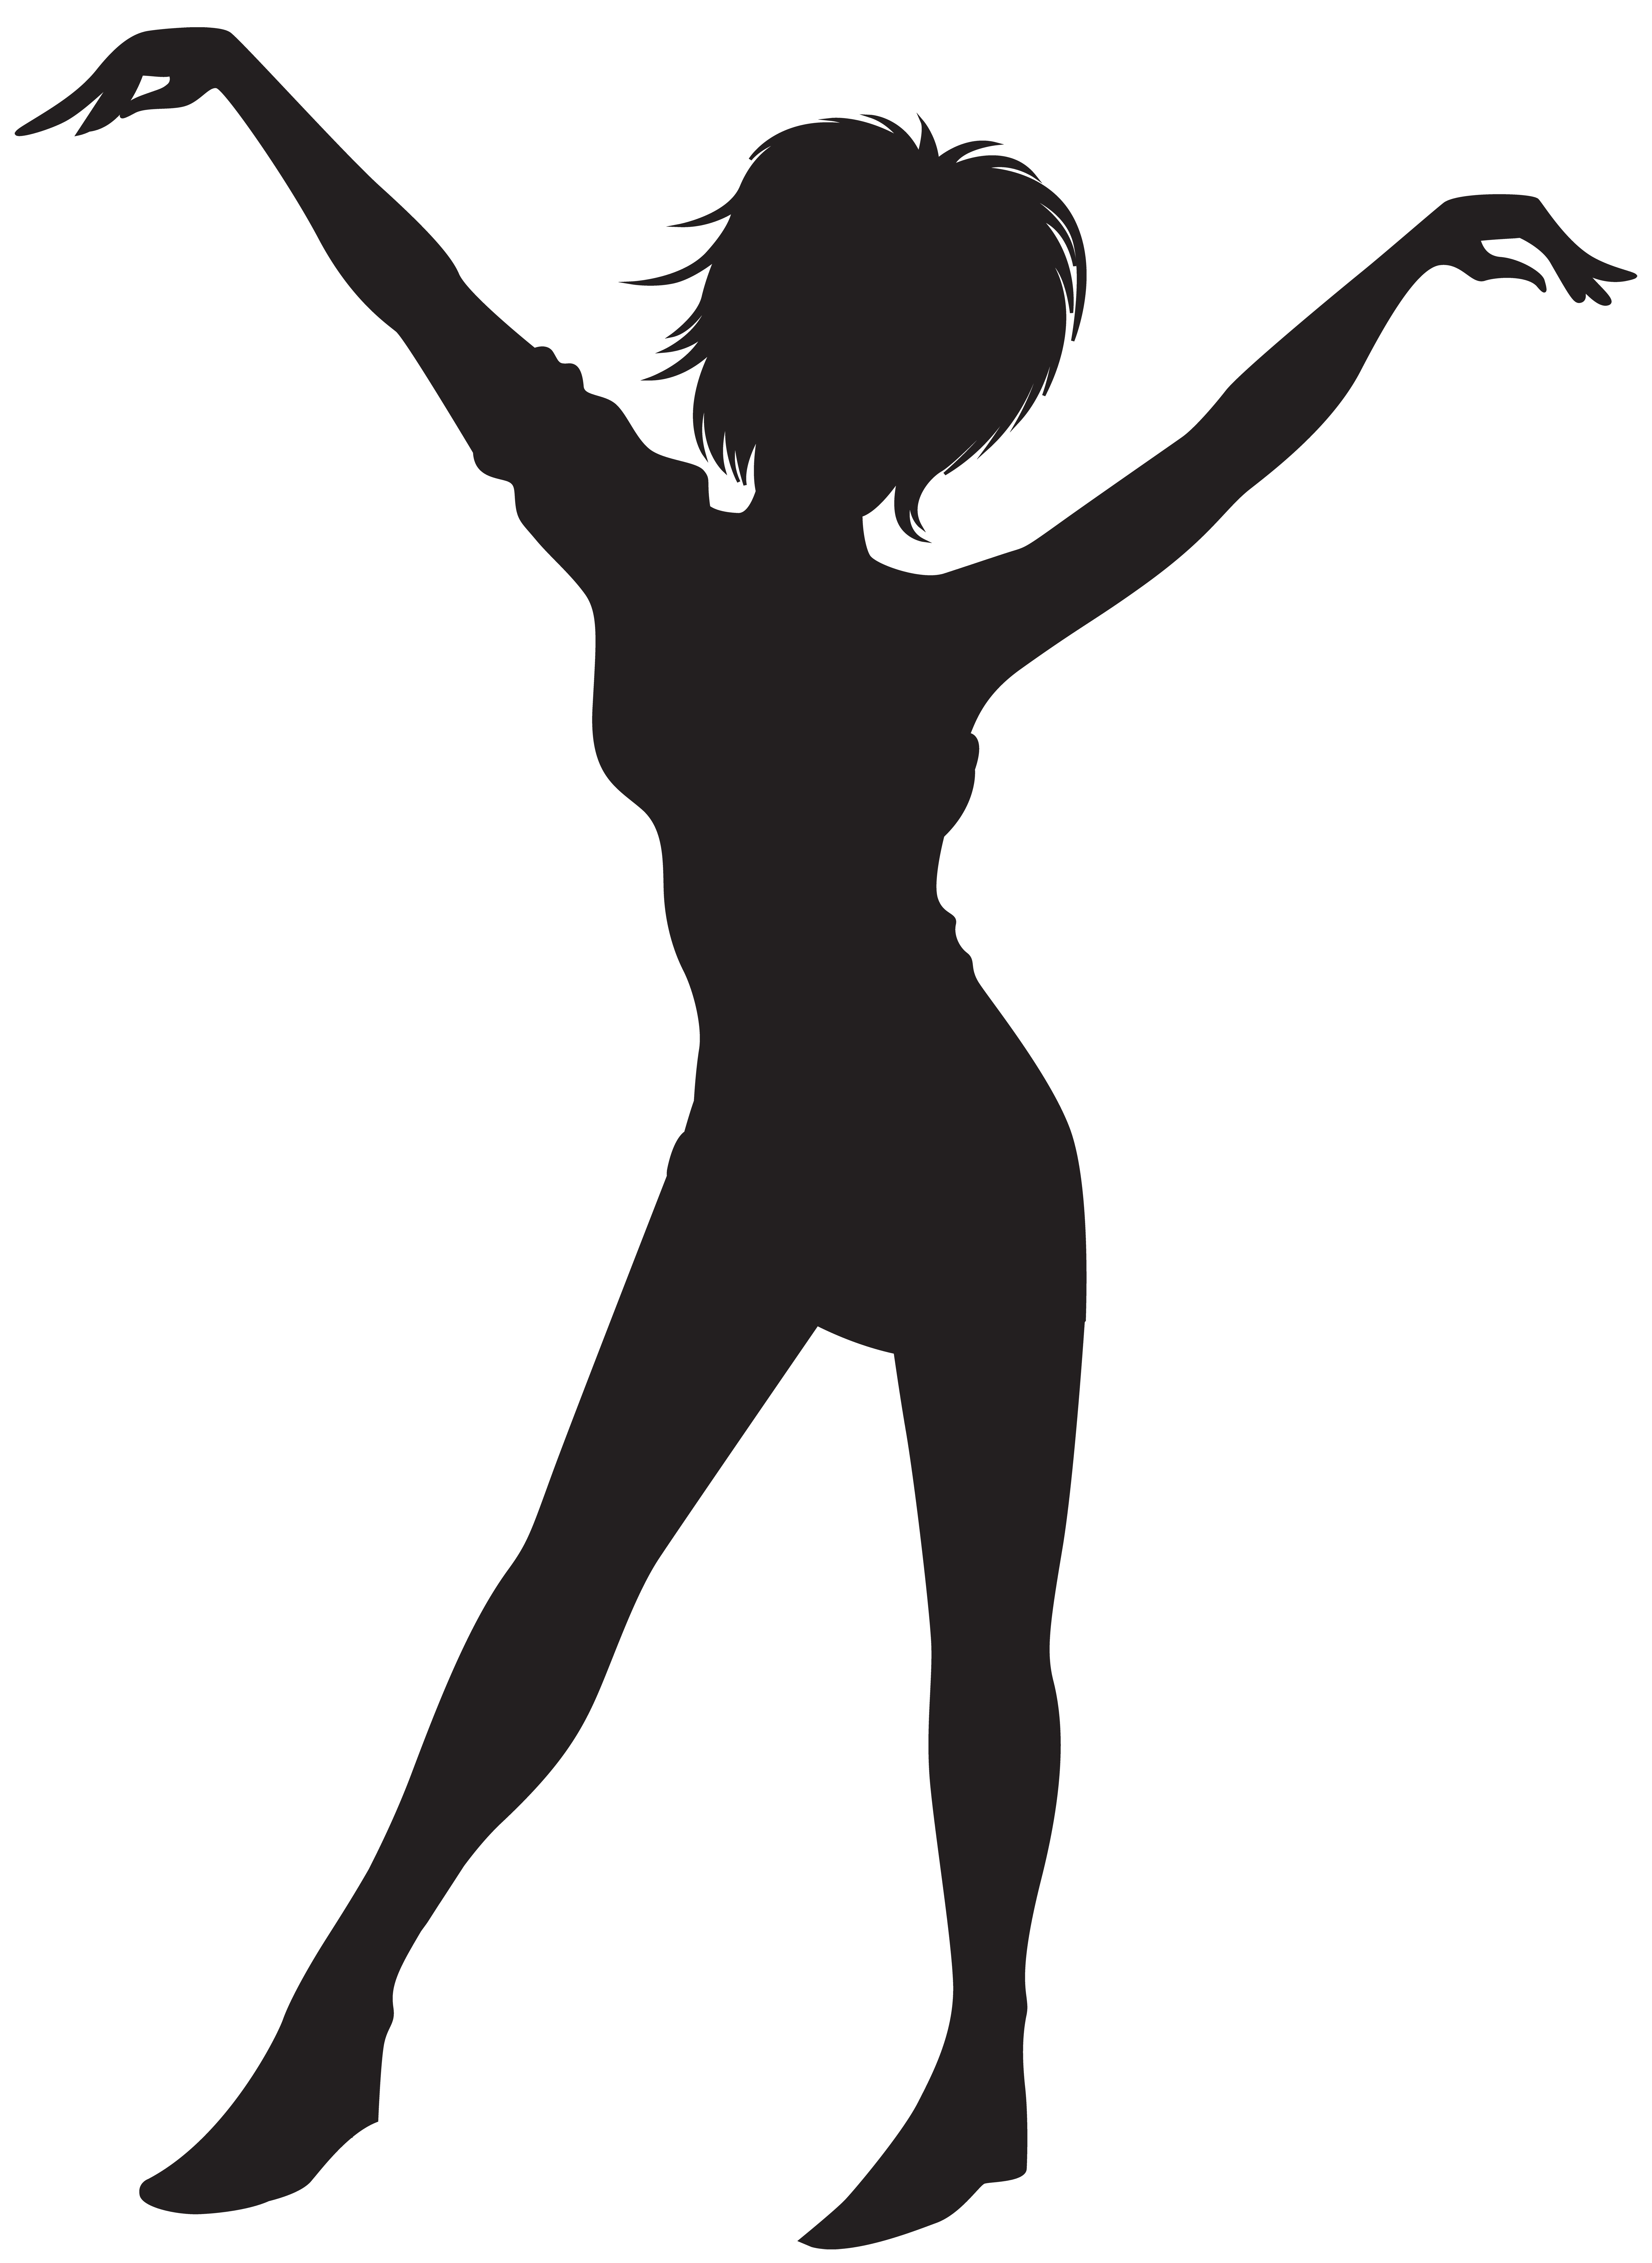 Lady clipart dance. Dancing girl silhouette clip